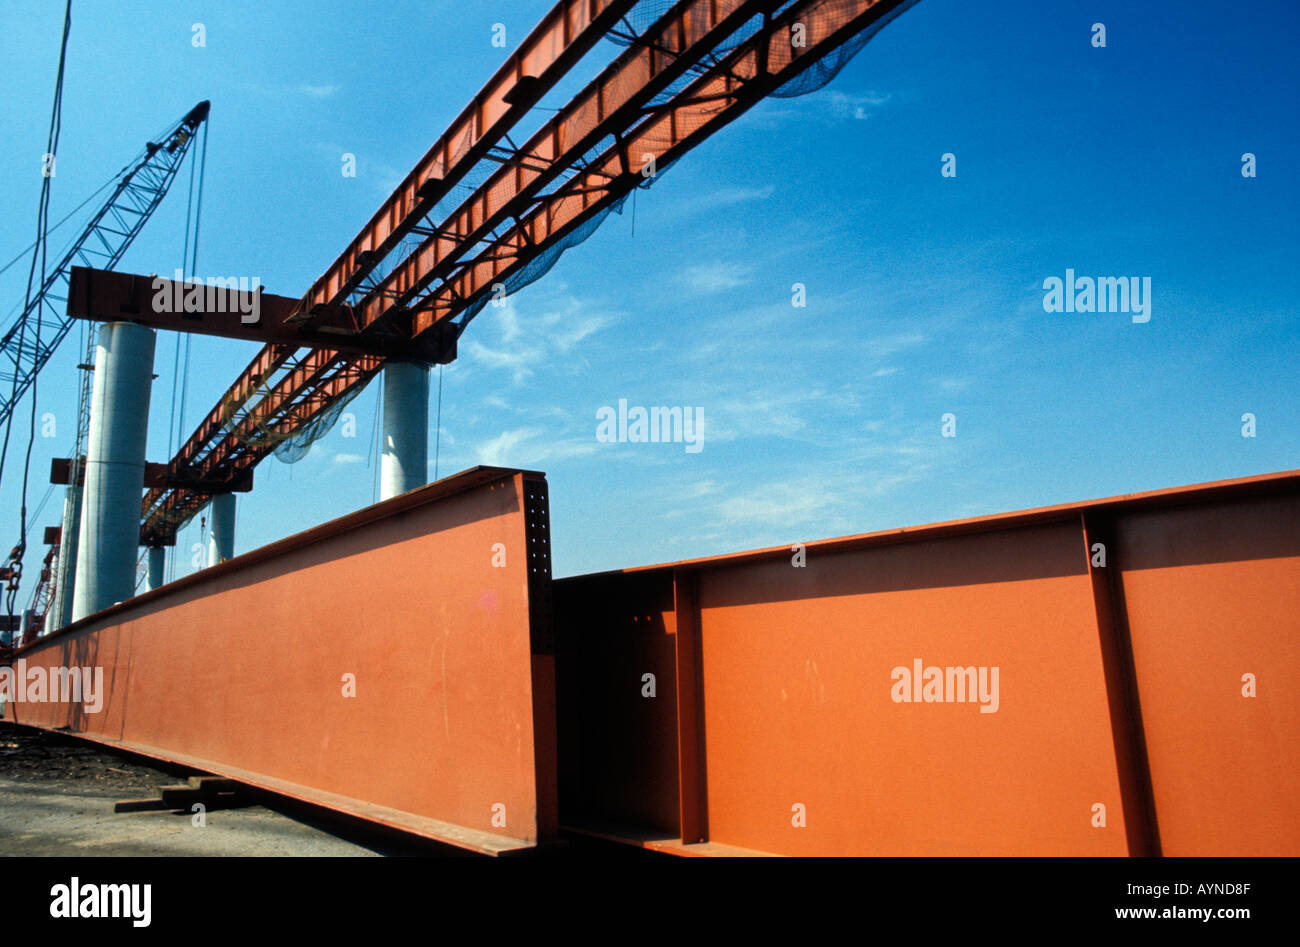 Steel girder staged and waiting to be put in place for an overhead highway construction project - Stock Image